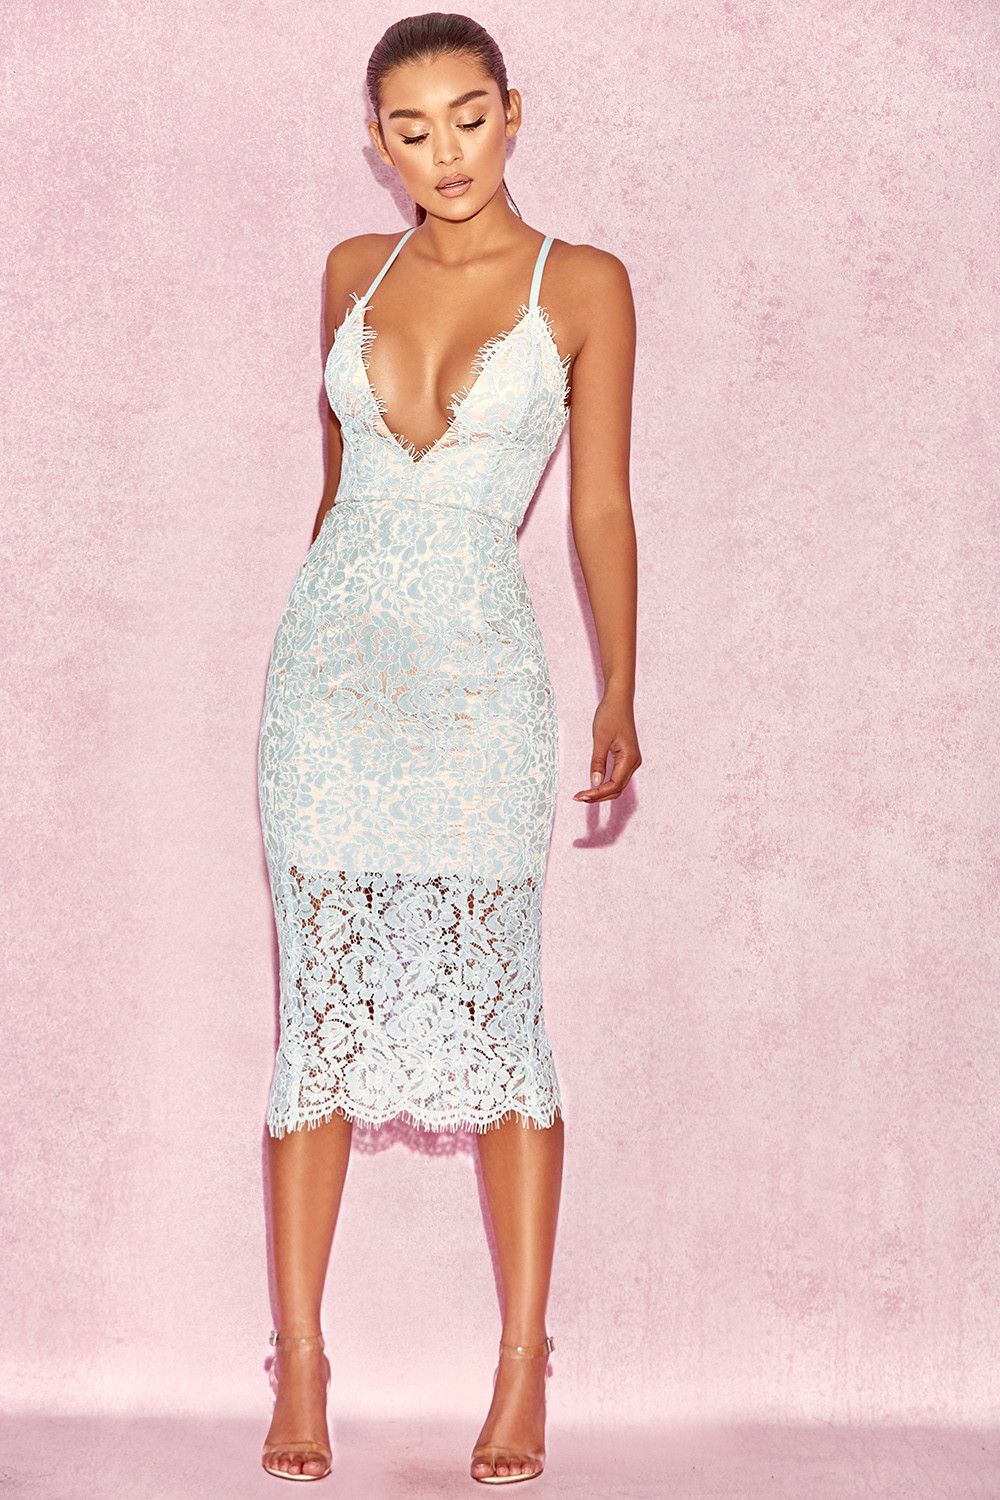 bac862fa5d Clothing : Bodycon Dresses : 'Edeta' Light Blue Lace Plunge Dress ...